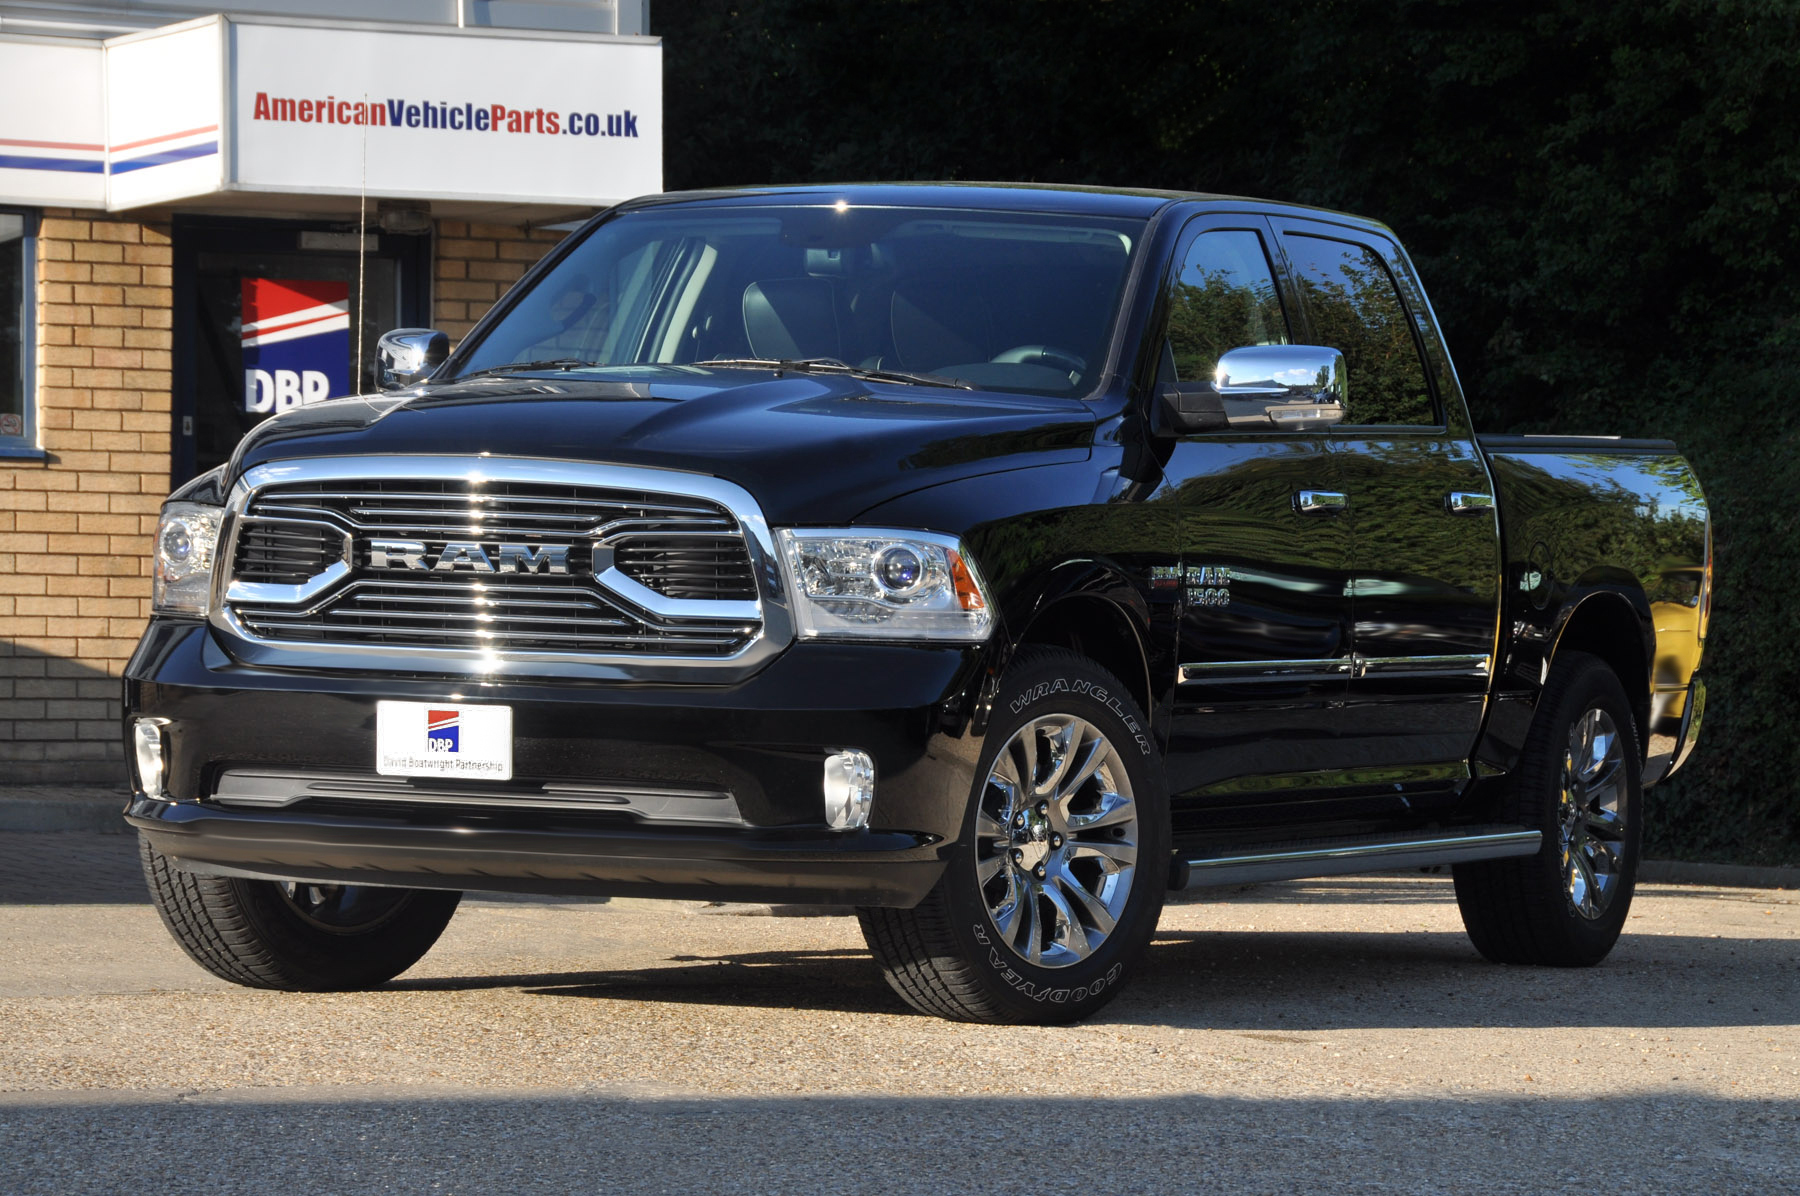 Dodge Rams UK | New Dodge Ram Trucks for Sale in the UK